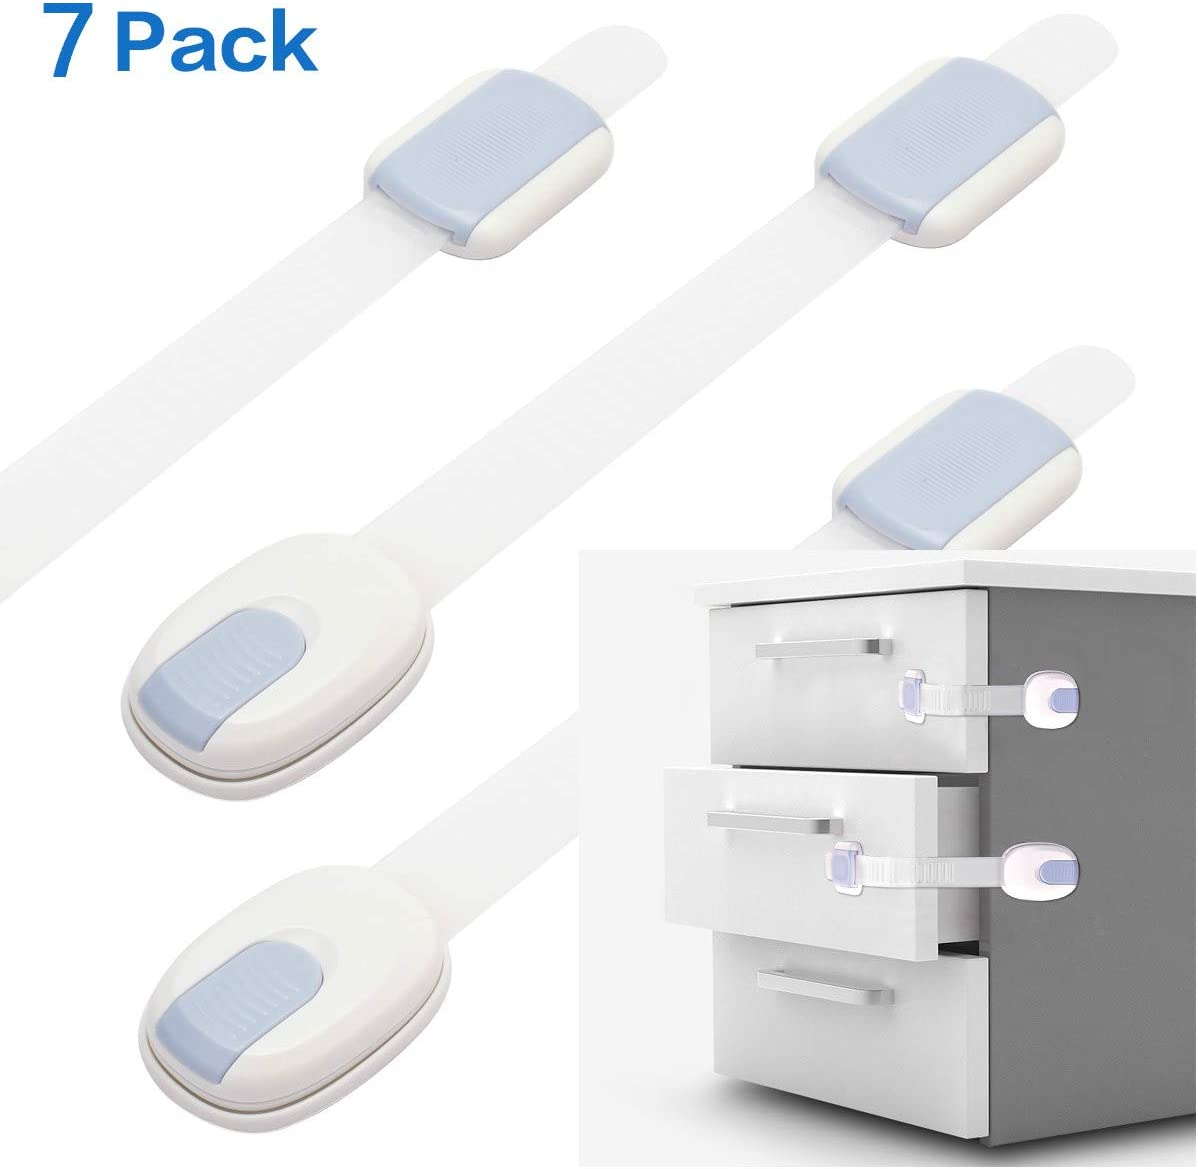 7pcs Child Safety Cupboard Locks with Adhesive Baby Cupboard Safety Locks for Drawers,Cabinets,Appliances,Doors,Toilet Seats and Fridges Child Safety Locks